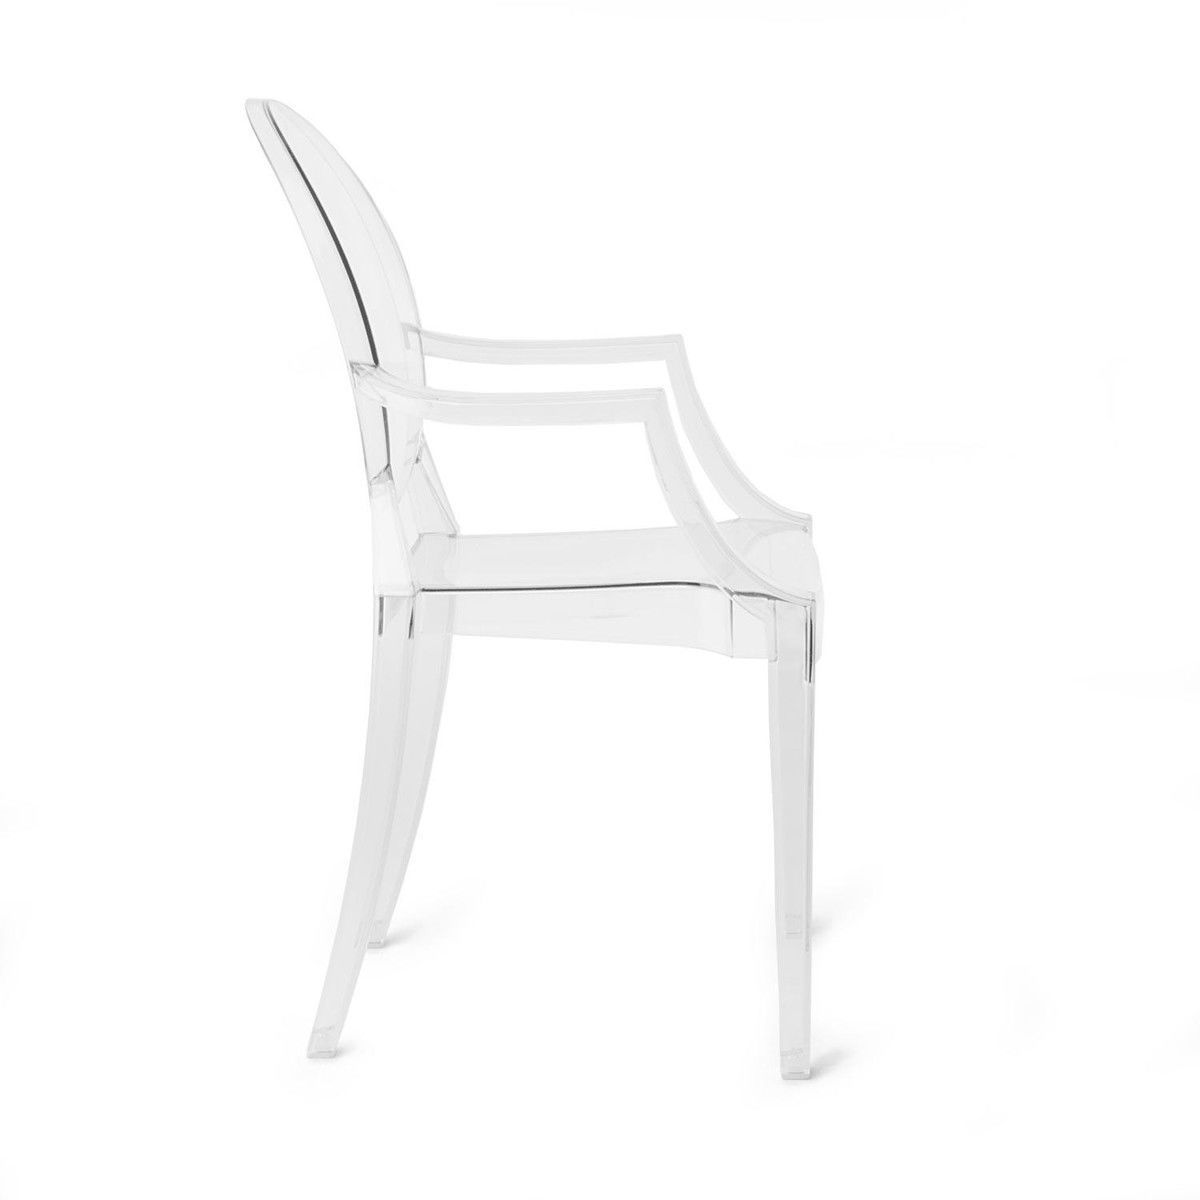 Chaise Enfant Accoudoir Good Chaise Enfant Kartell Destin Lou Lou Ghost Chaise